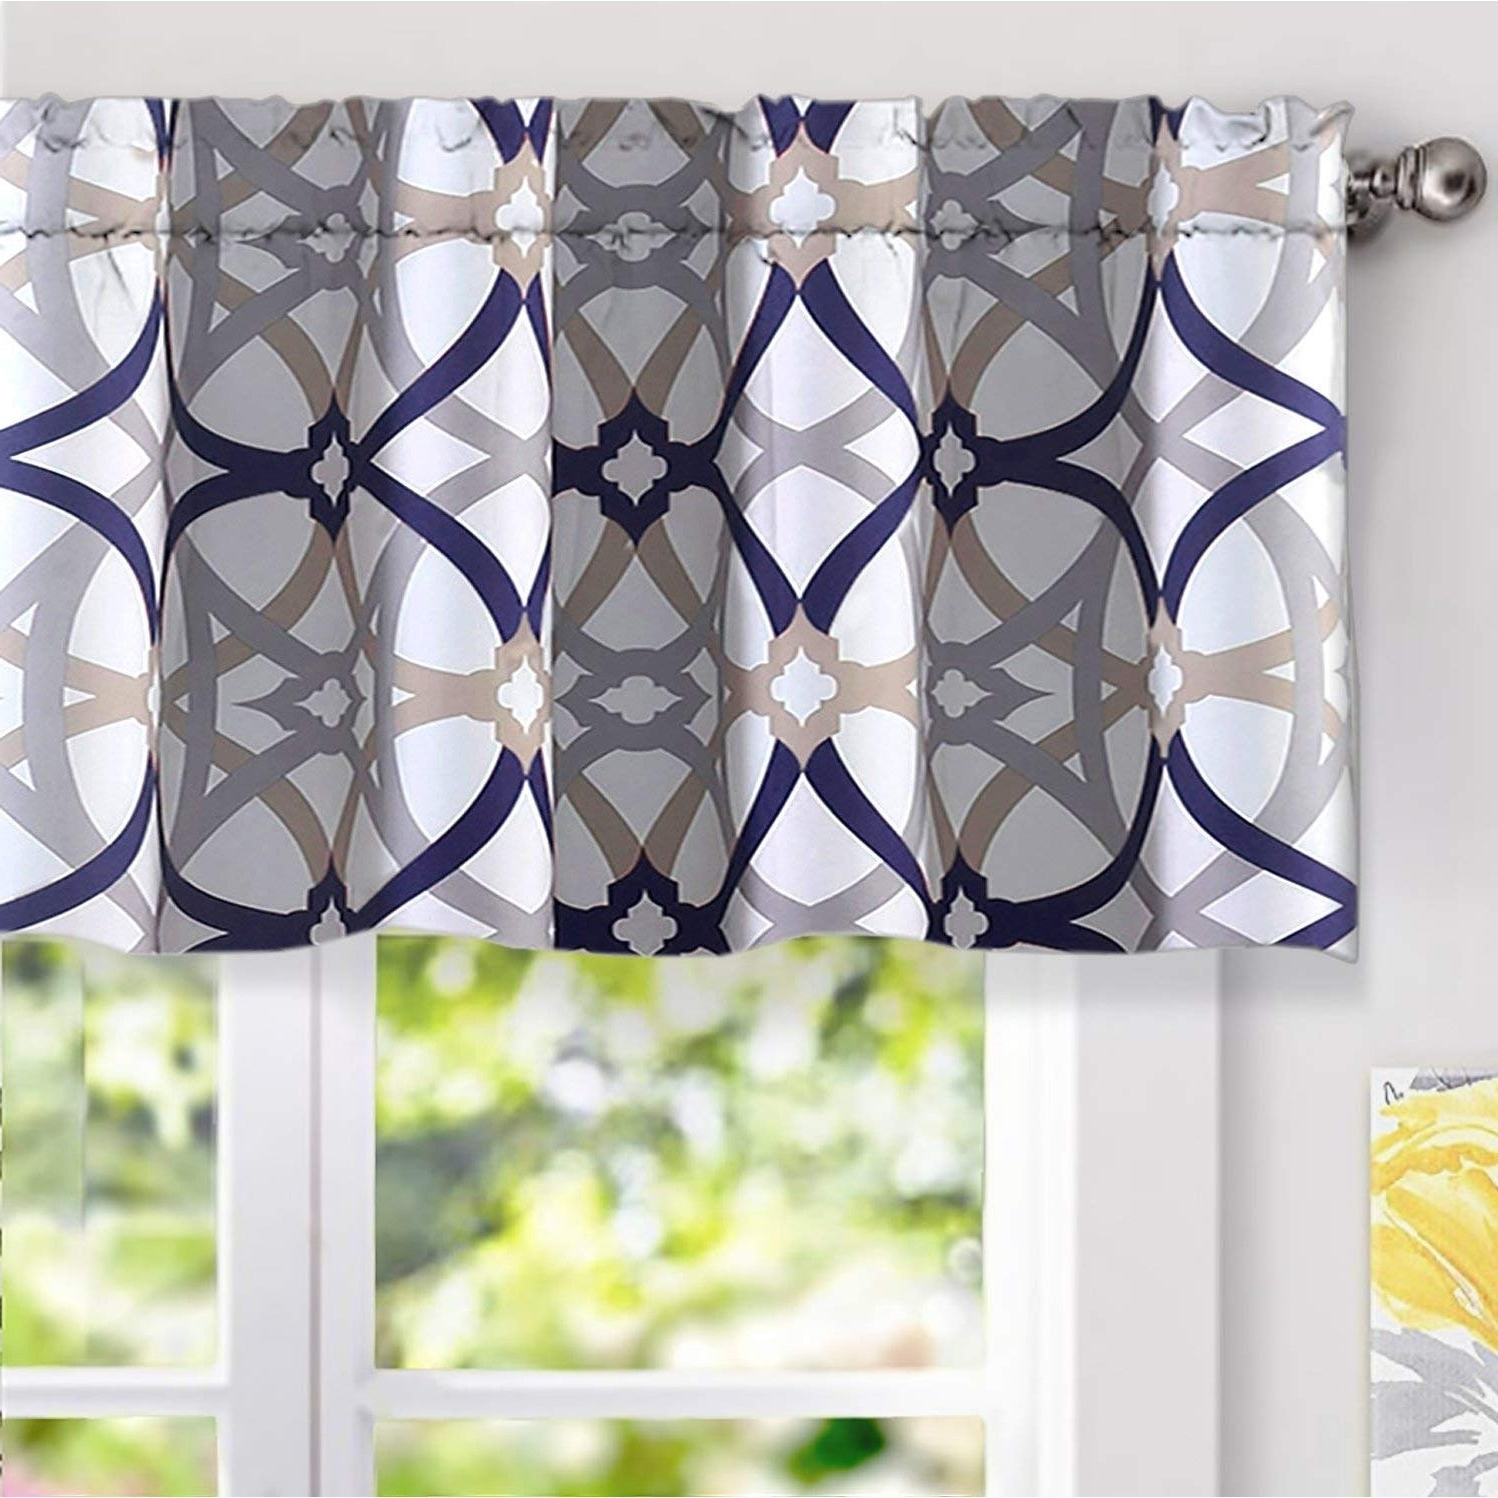 Current Carson Carrington Jarvenpaa Geo Trellis Pattern Window Valance Inside Trellis Pattern Window Valances (View 3 of 20)